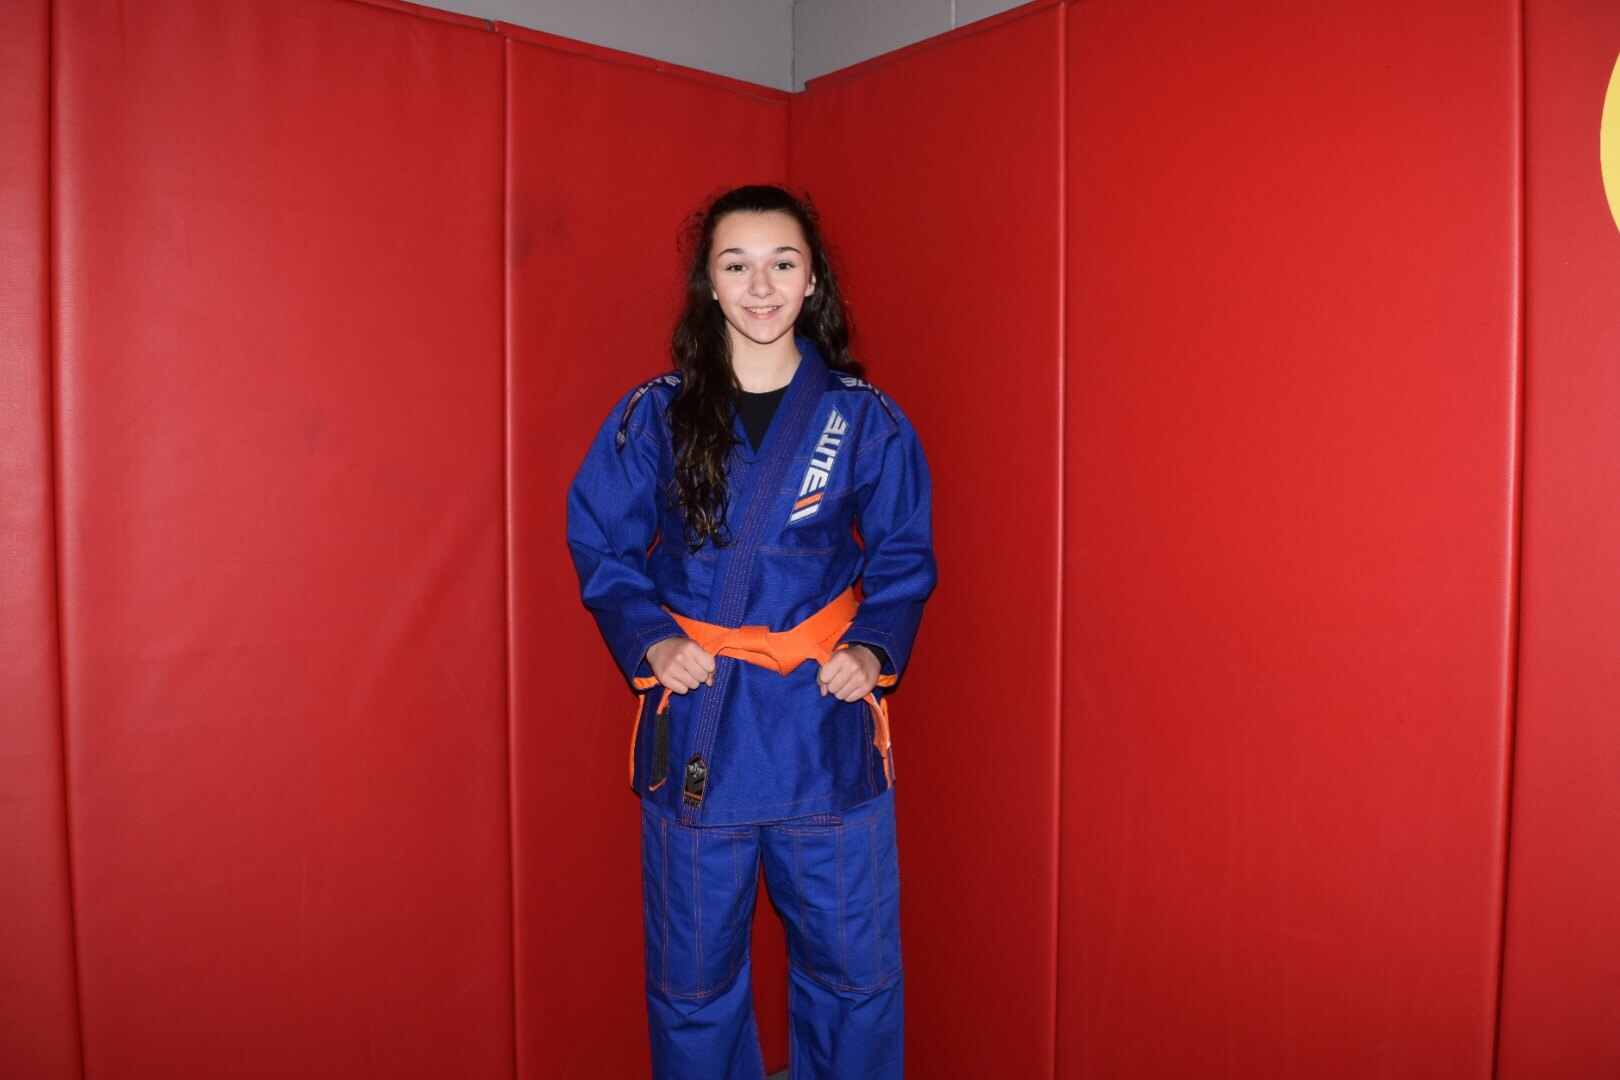 Elite Sports Team Elite Bjj Fighter Claire MacDougall Image8